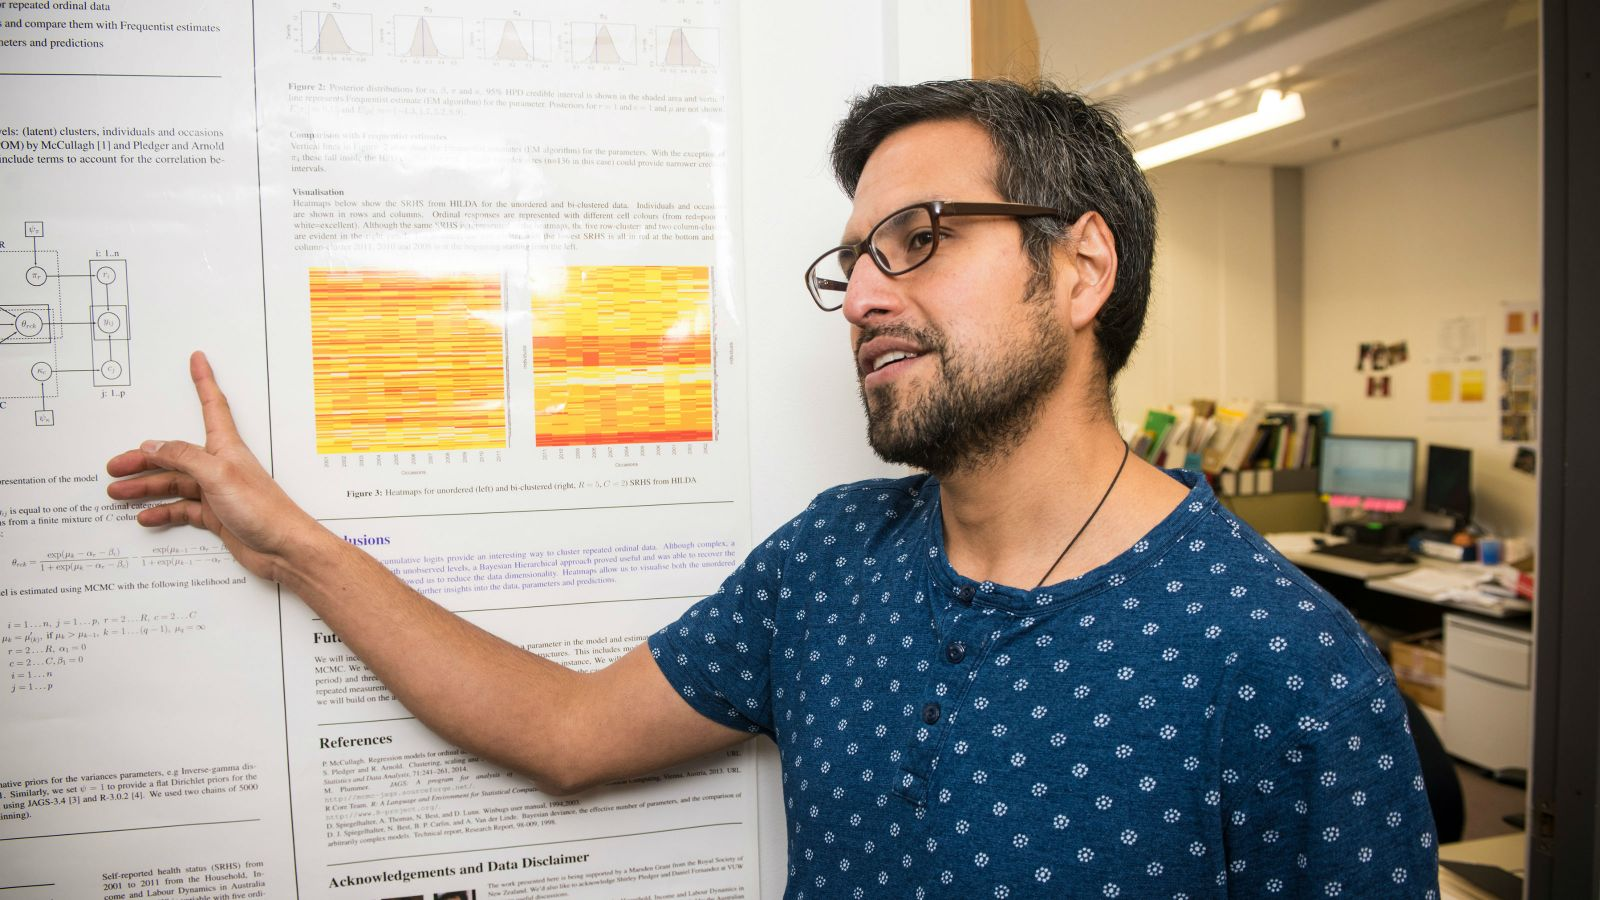 Roy Costilla points at his research poster